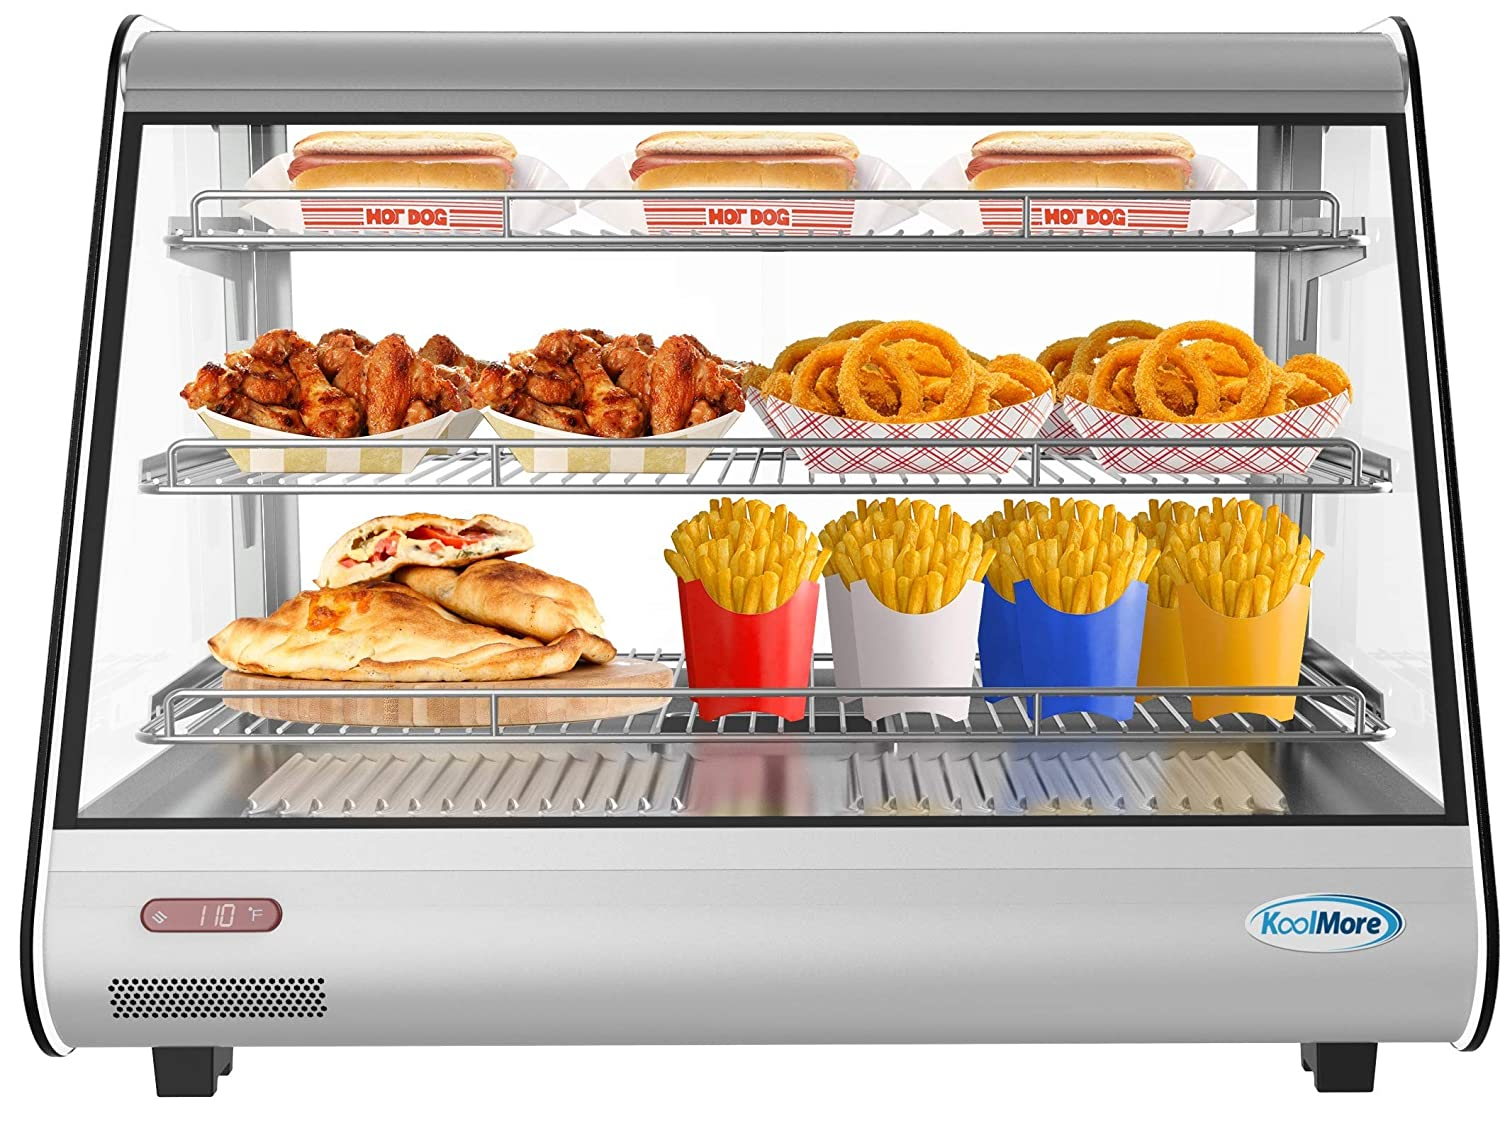 """KoolMore 34"""" Stainless Steel Commercial Countertop Food Warmer Display Case with LED Lighting - 5.6. cu ft."""